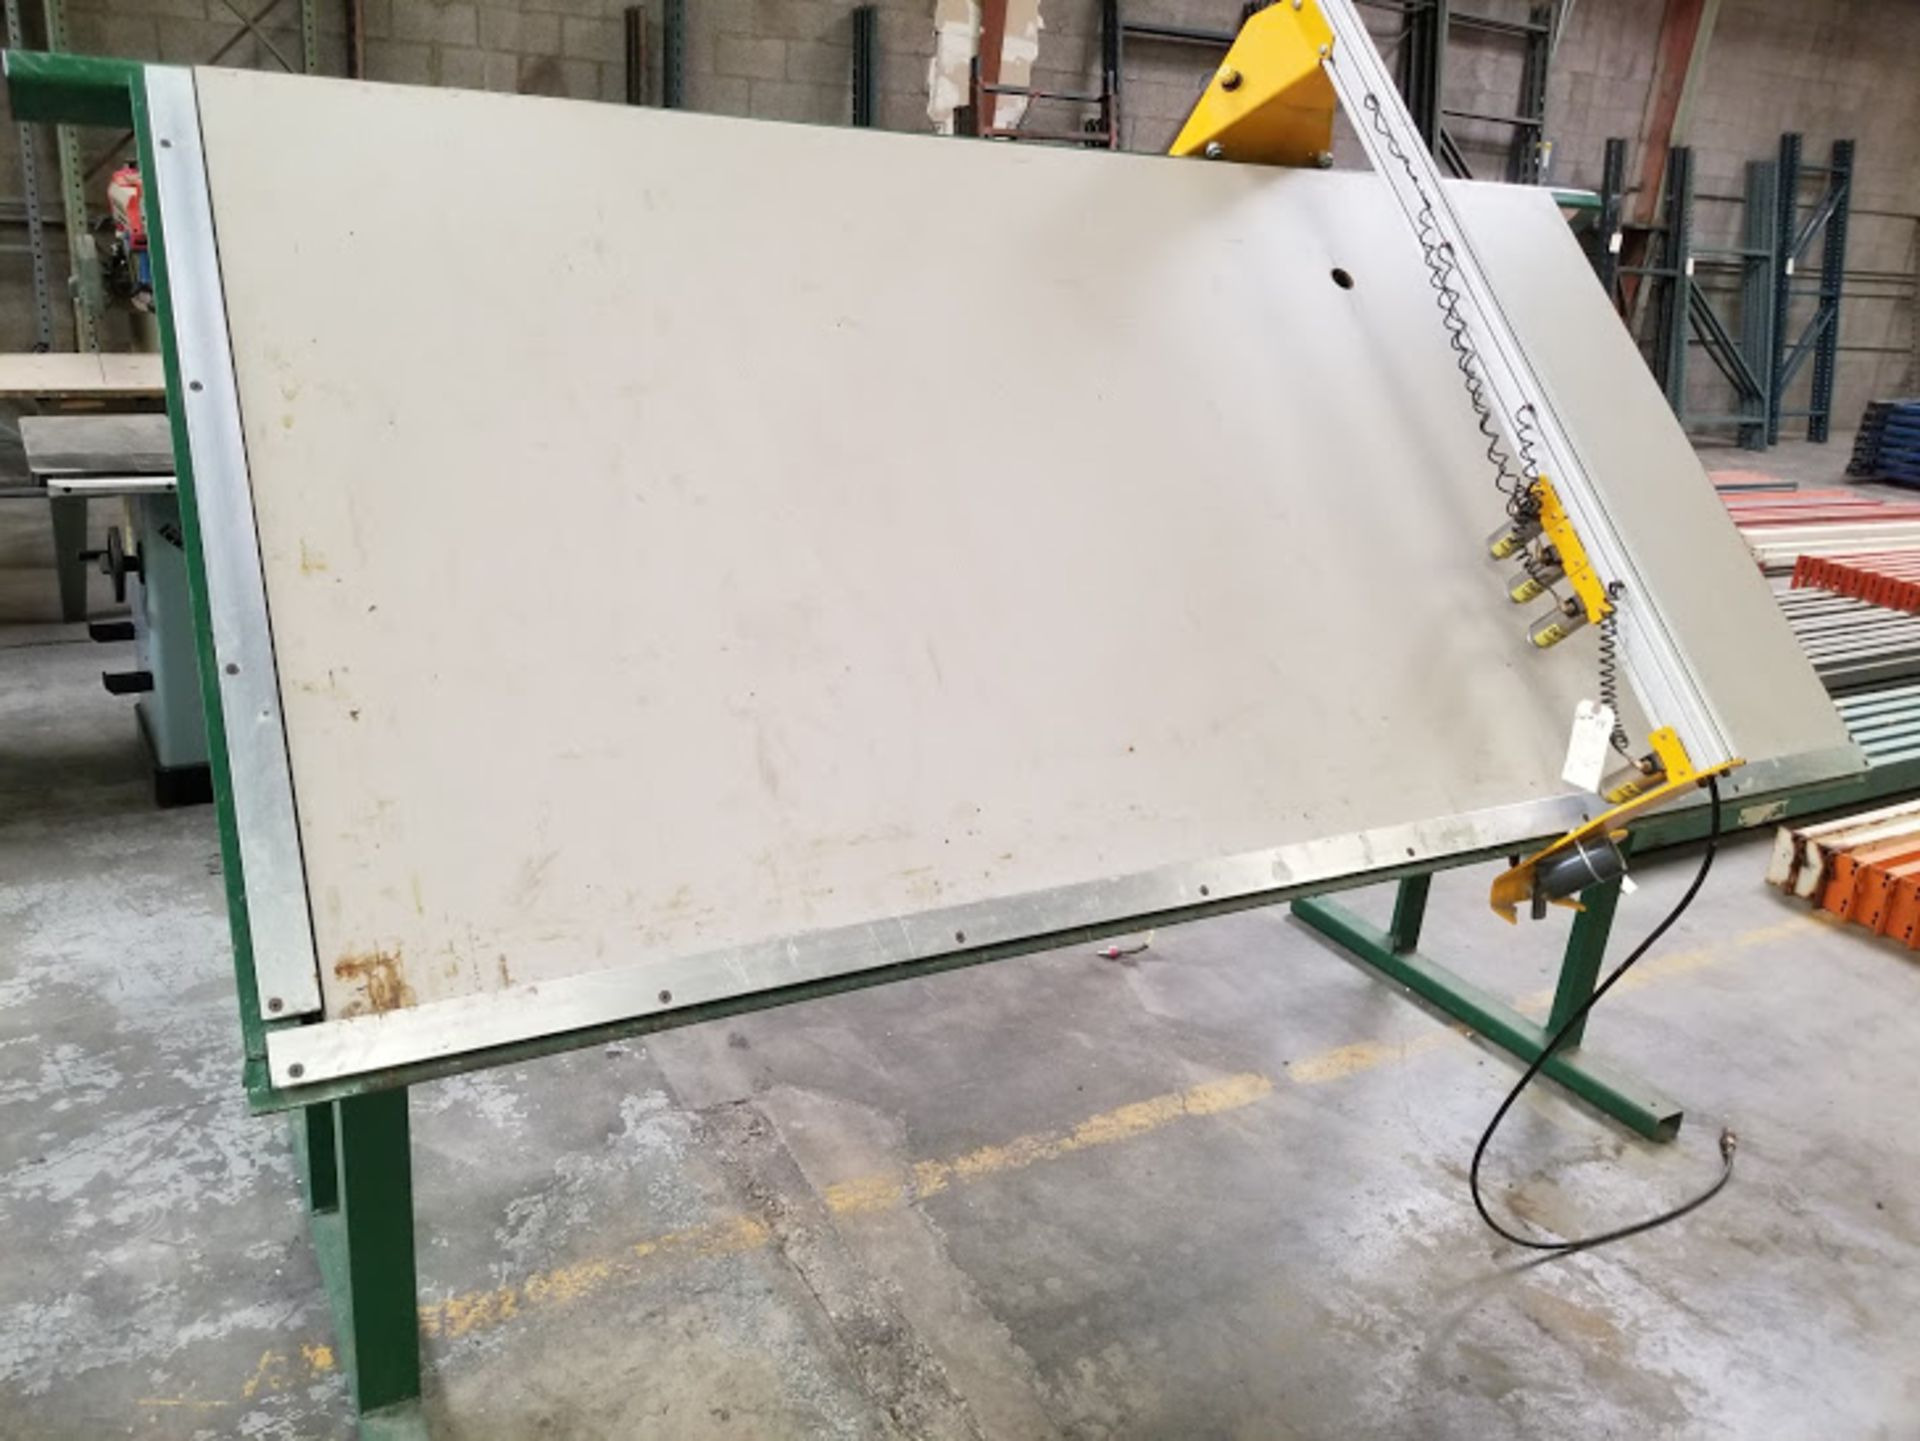 Lot 19 - Castle Face Frame Table, 4' x 8', 4 - Pneumatic Hold Downs